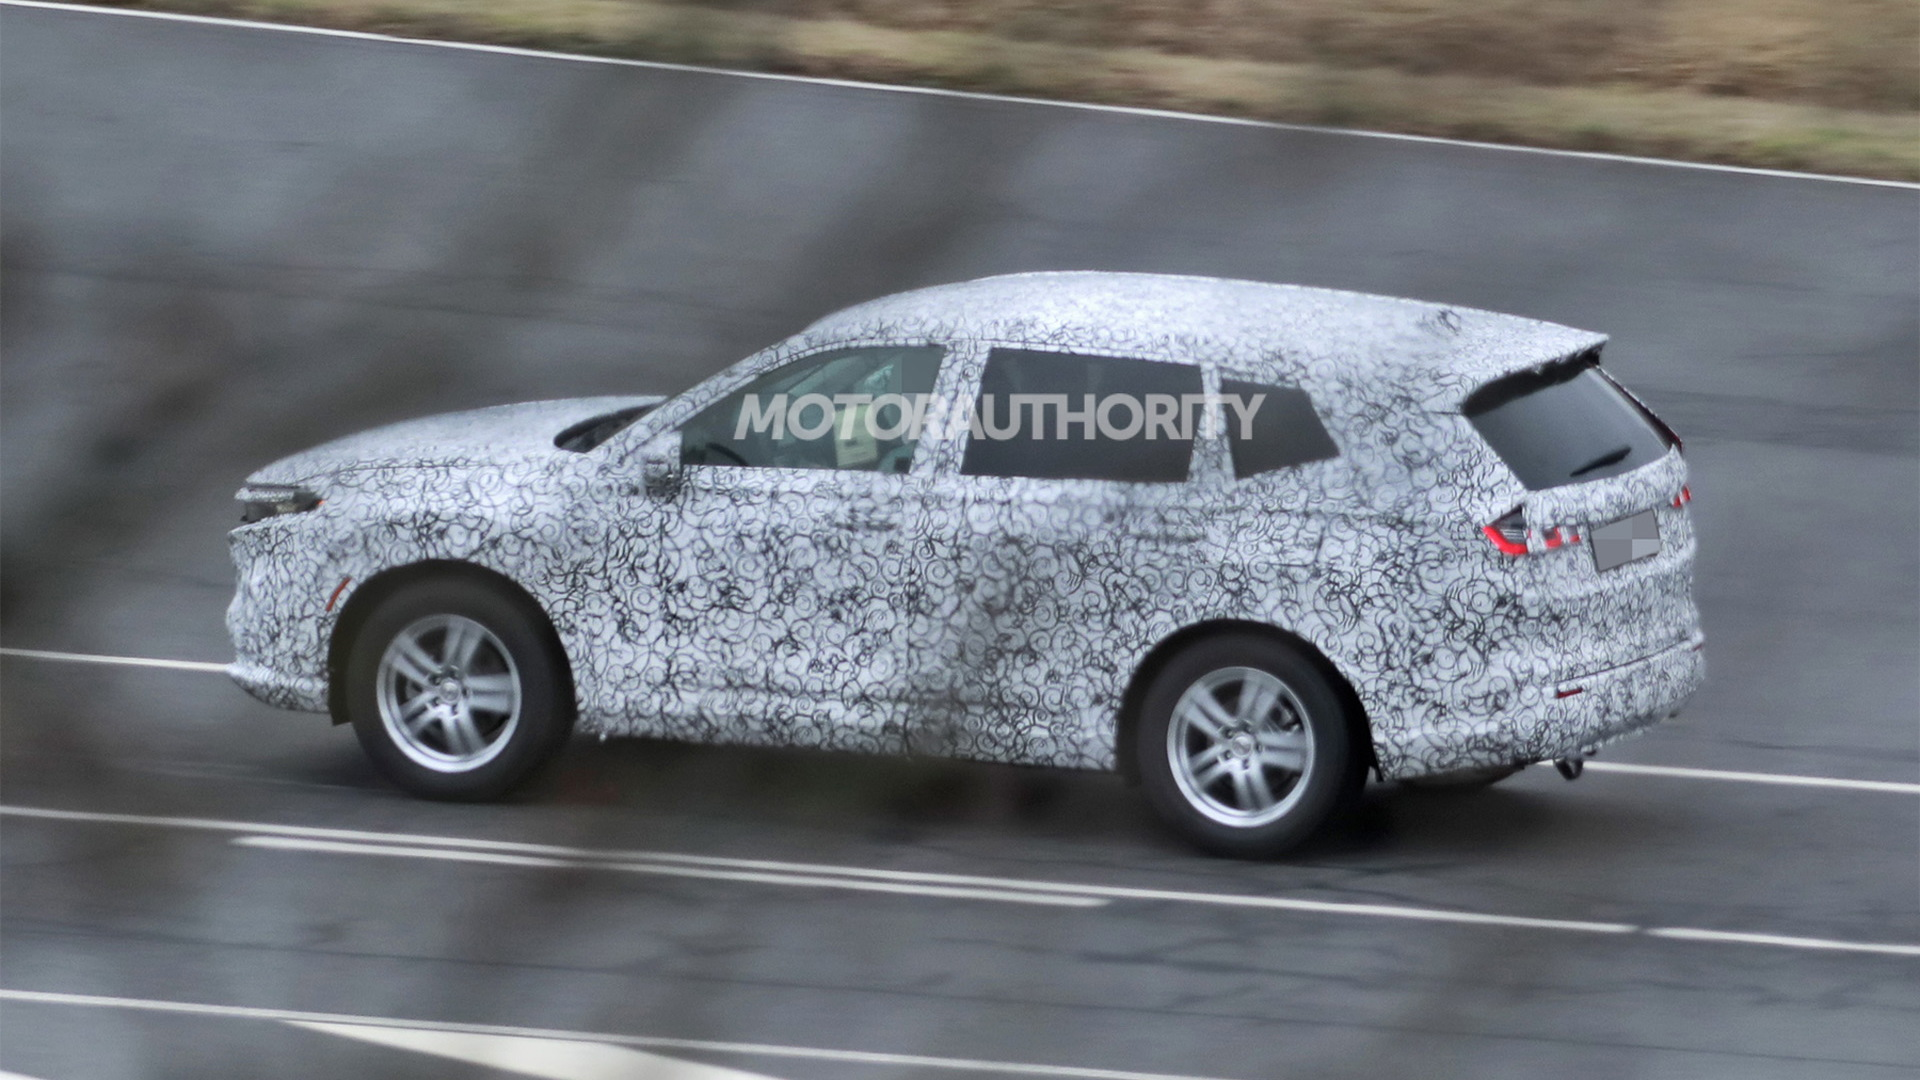 2022 Honda CR-V spy shots - Photo credit: S. Baldauf/SB-Medien